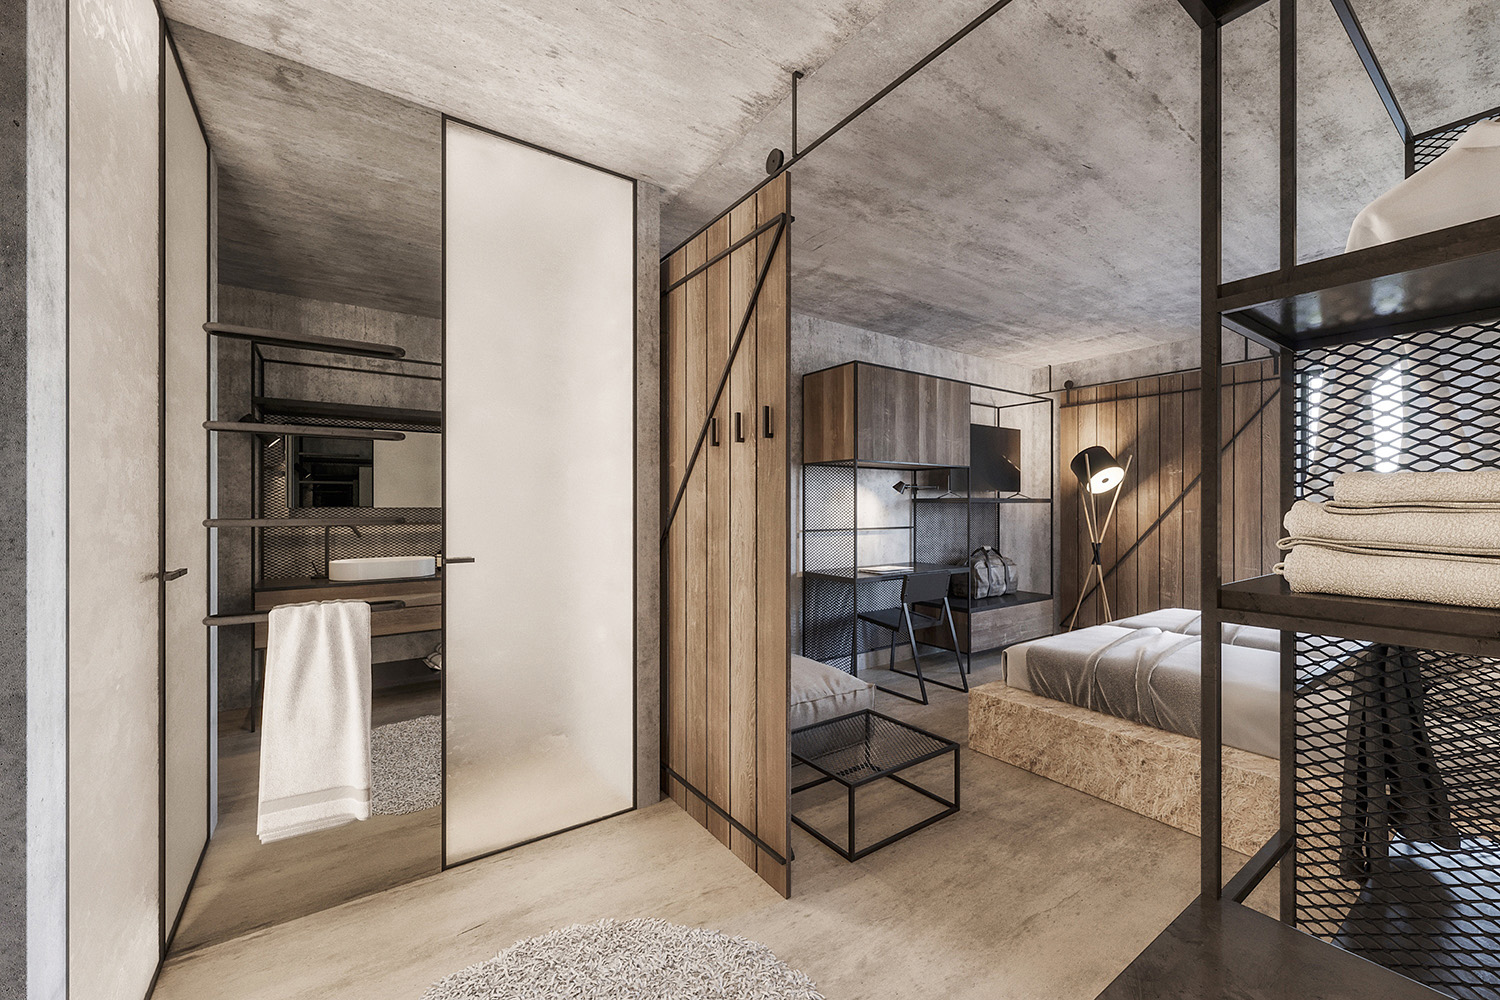 enota maestoso hotel & spa 10 Studio Spacer (visualisations)